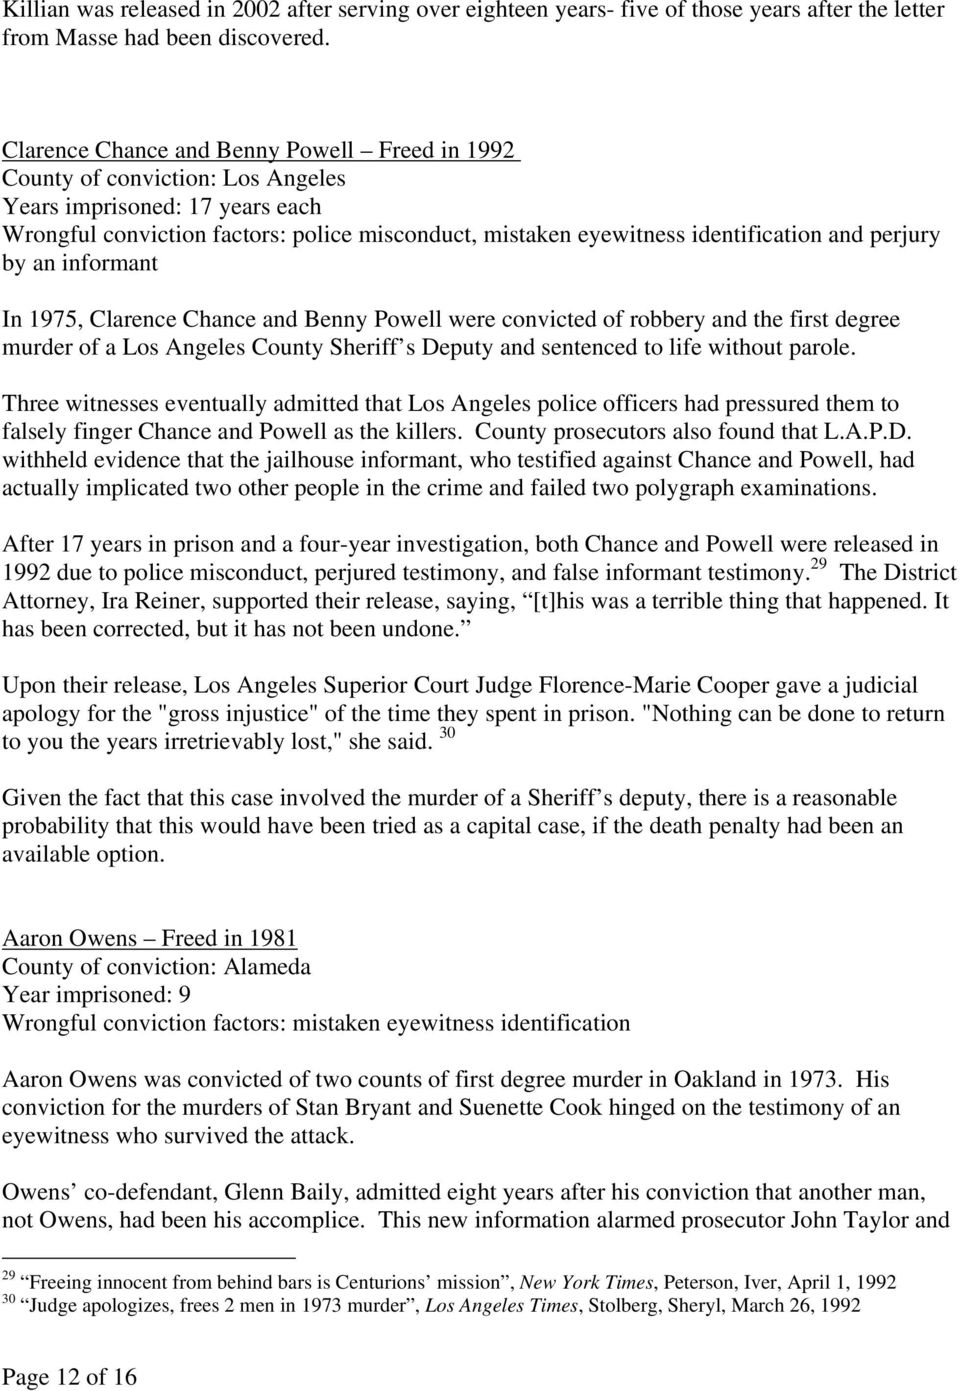 perjury by an informant In 1975, Clarence Chance and Benny Powell were convicted of robbery and the first degree murder of a Los Angeles County Sheriff s Deputy and sentenced to life without parole.